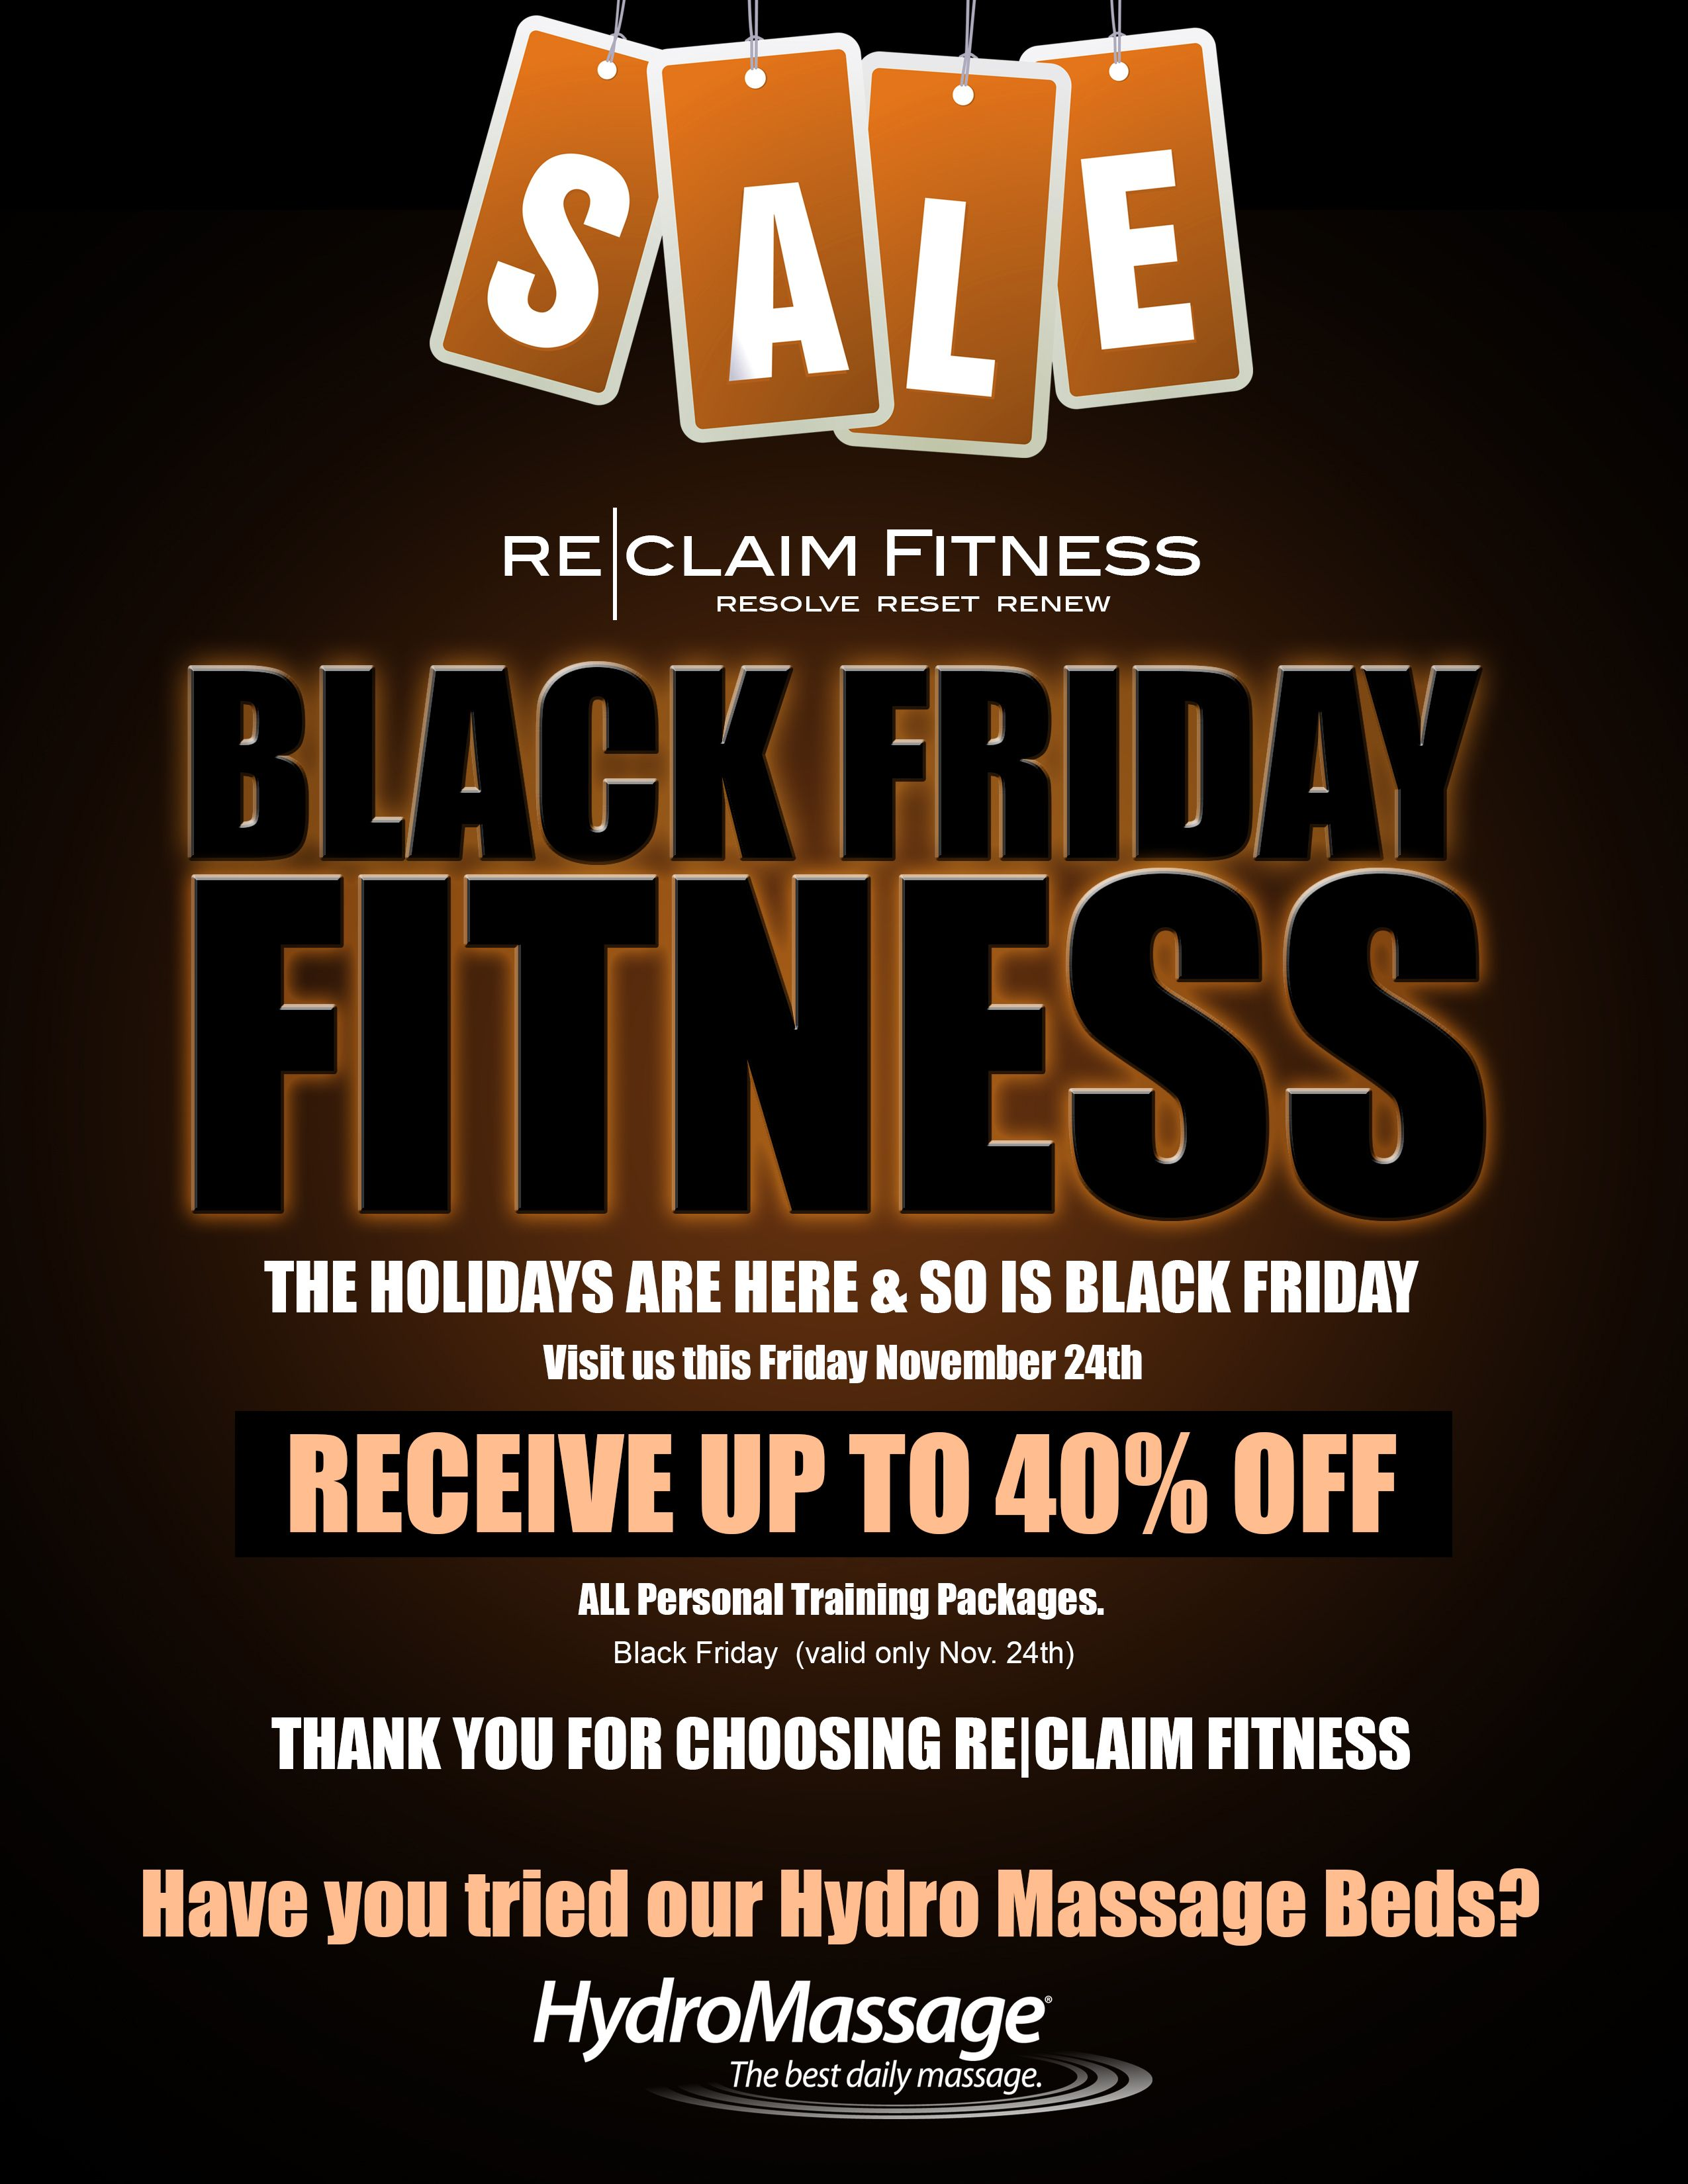 Get ready for our Black Friday sale! Head over to the gym